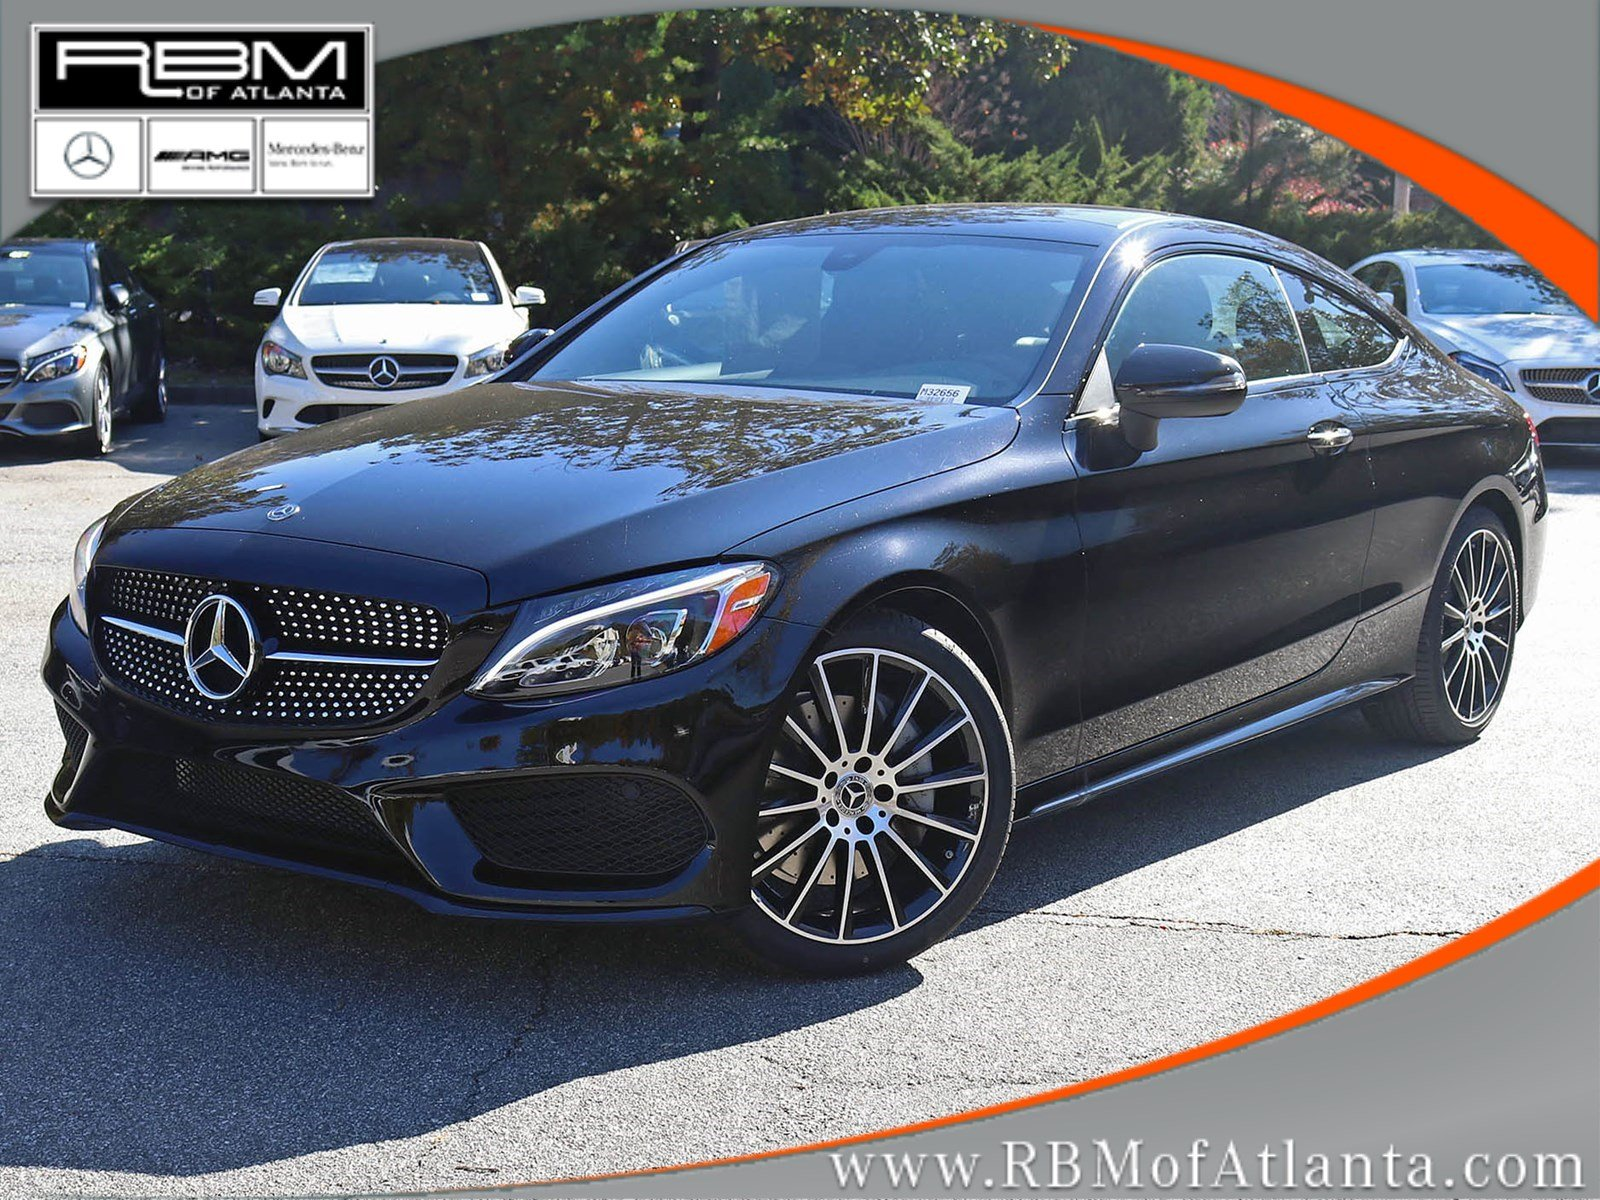 Rbm of atlanta mercedes benz atlanta dealer customer for Atlanta mercedes benz dealers